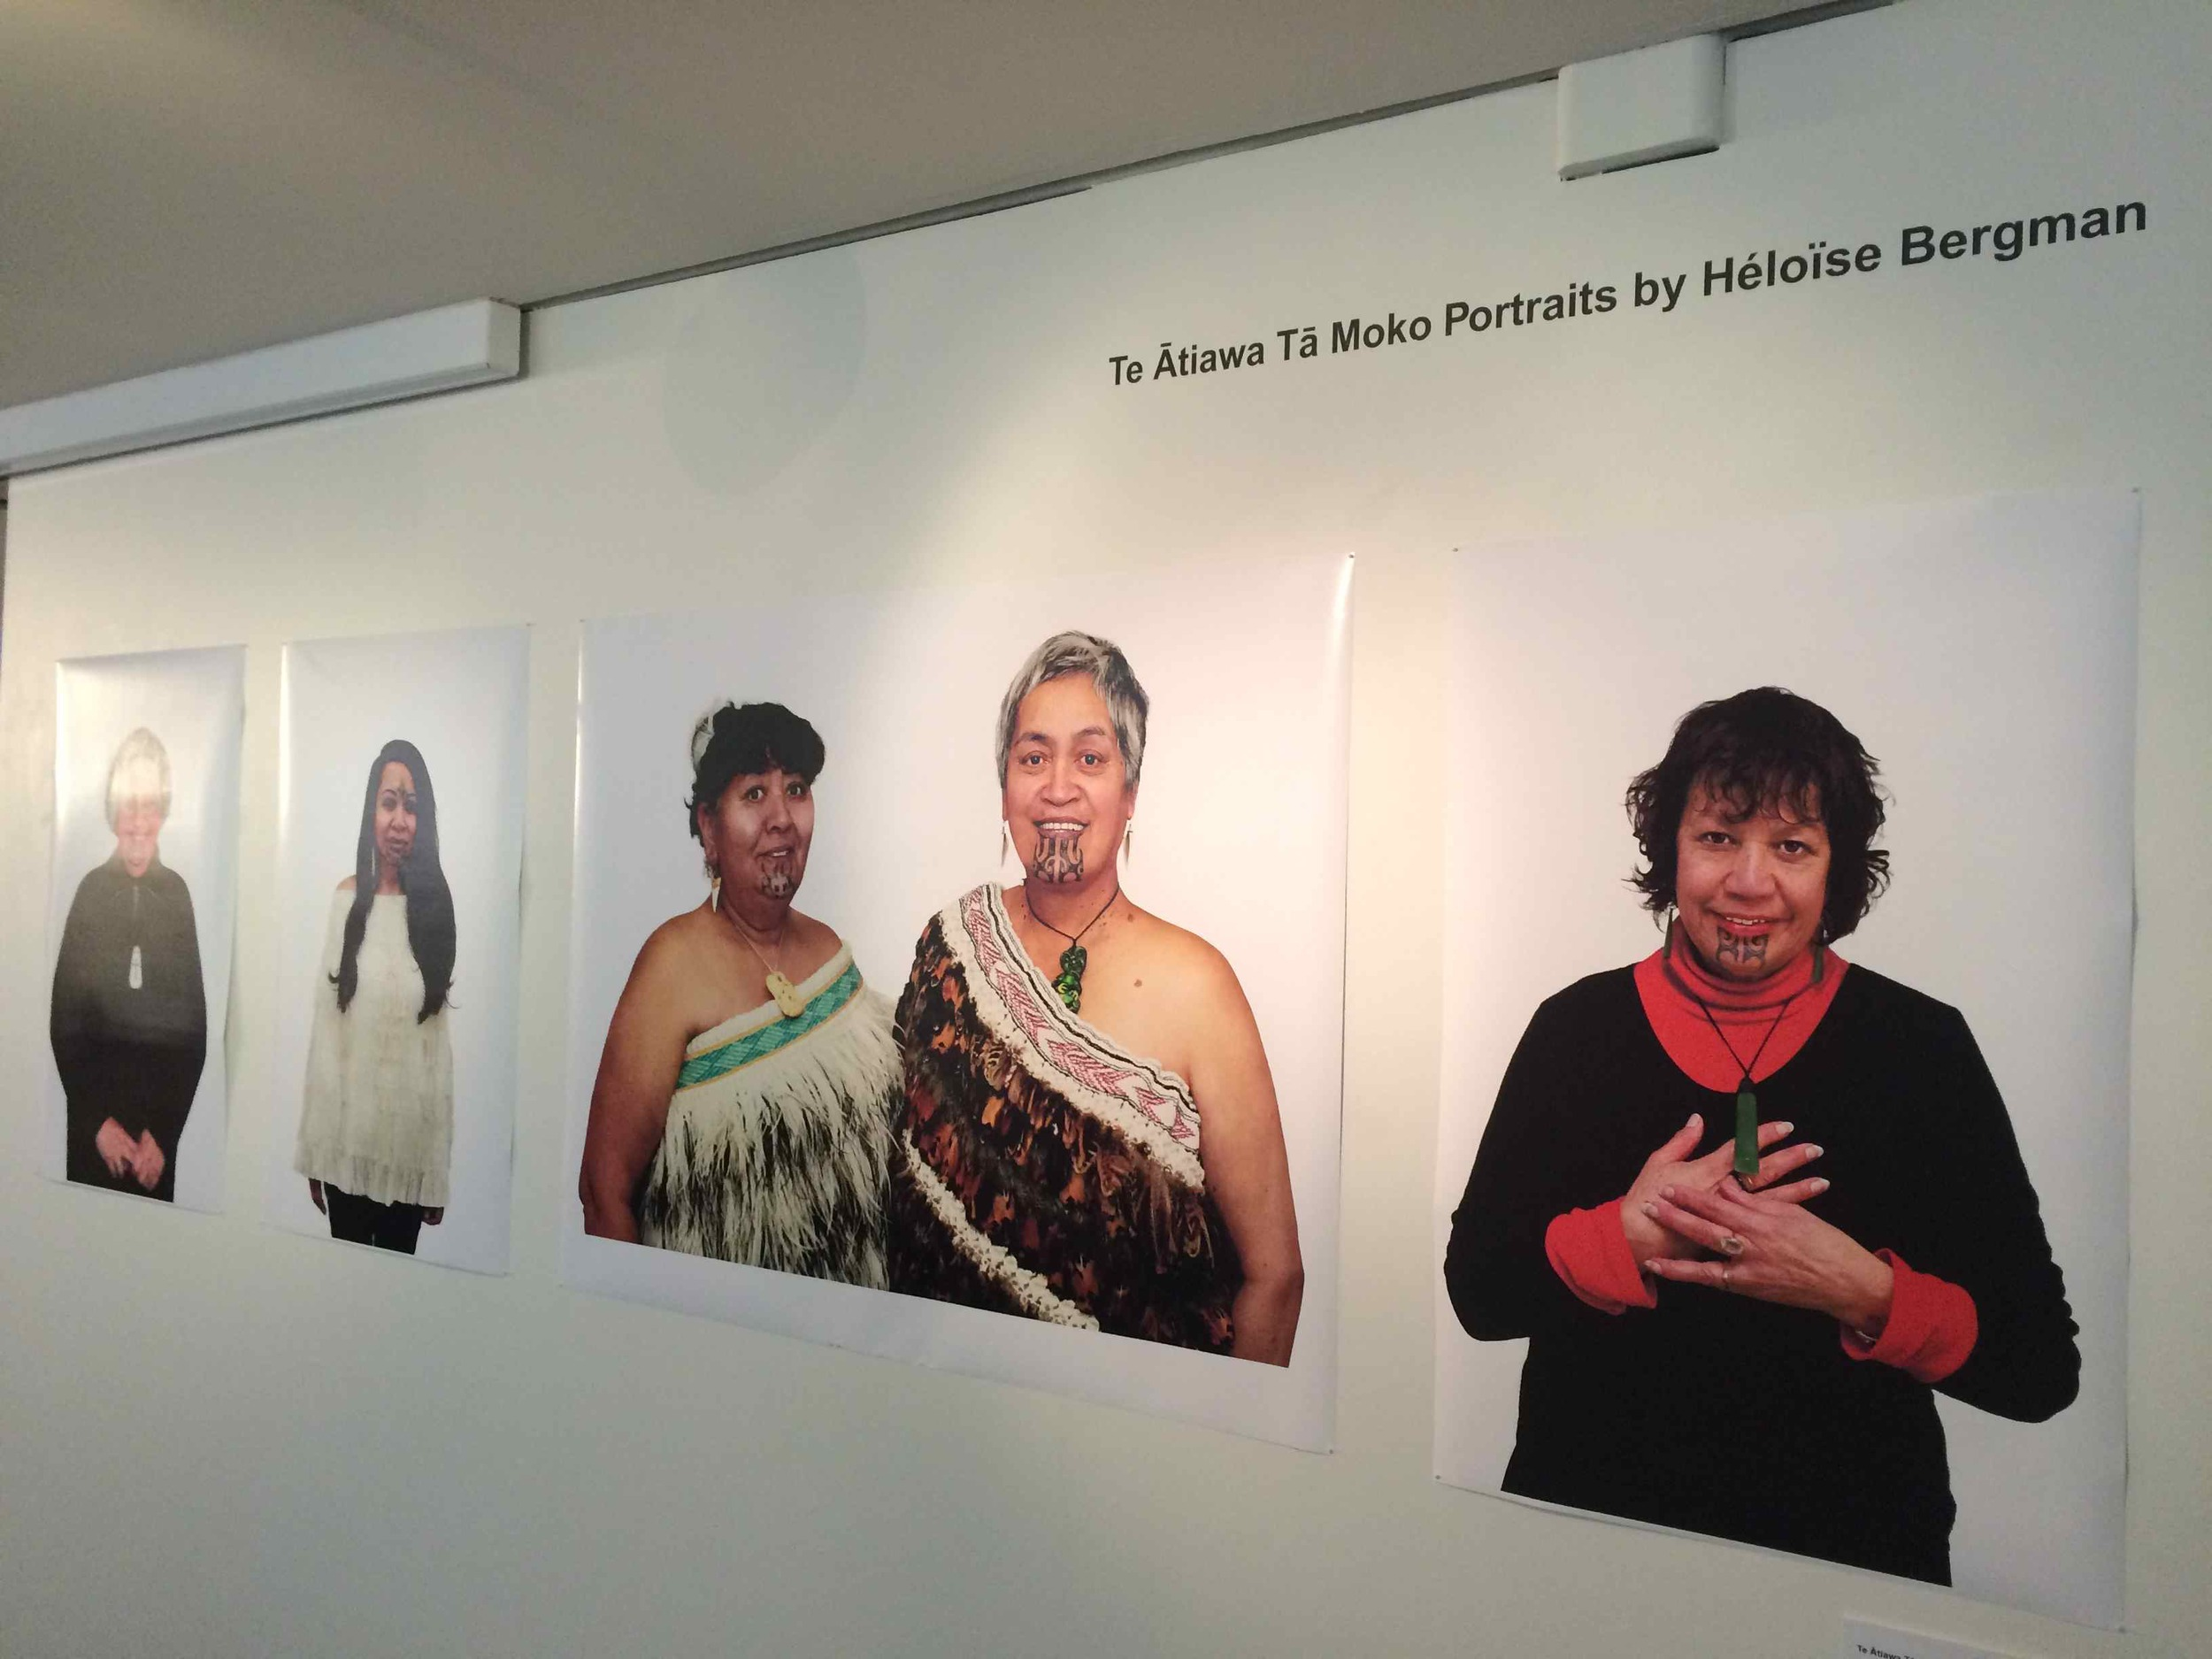 Photographic portraits in the exhibition featuring Te Ātiawa women and their moko kauae, by Heloise Bergman.